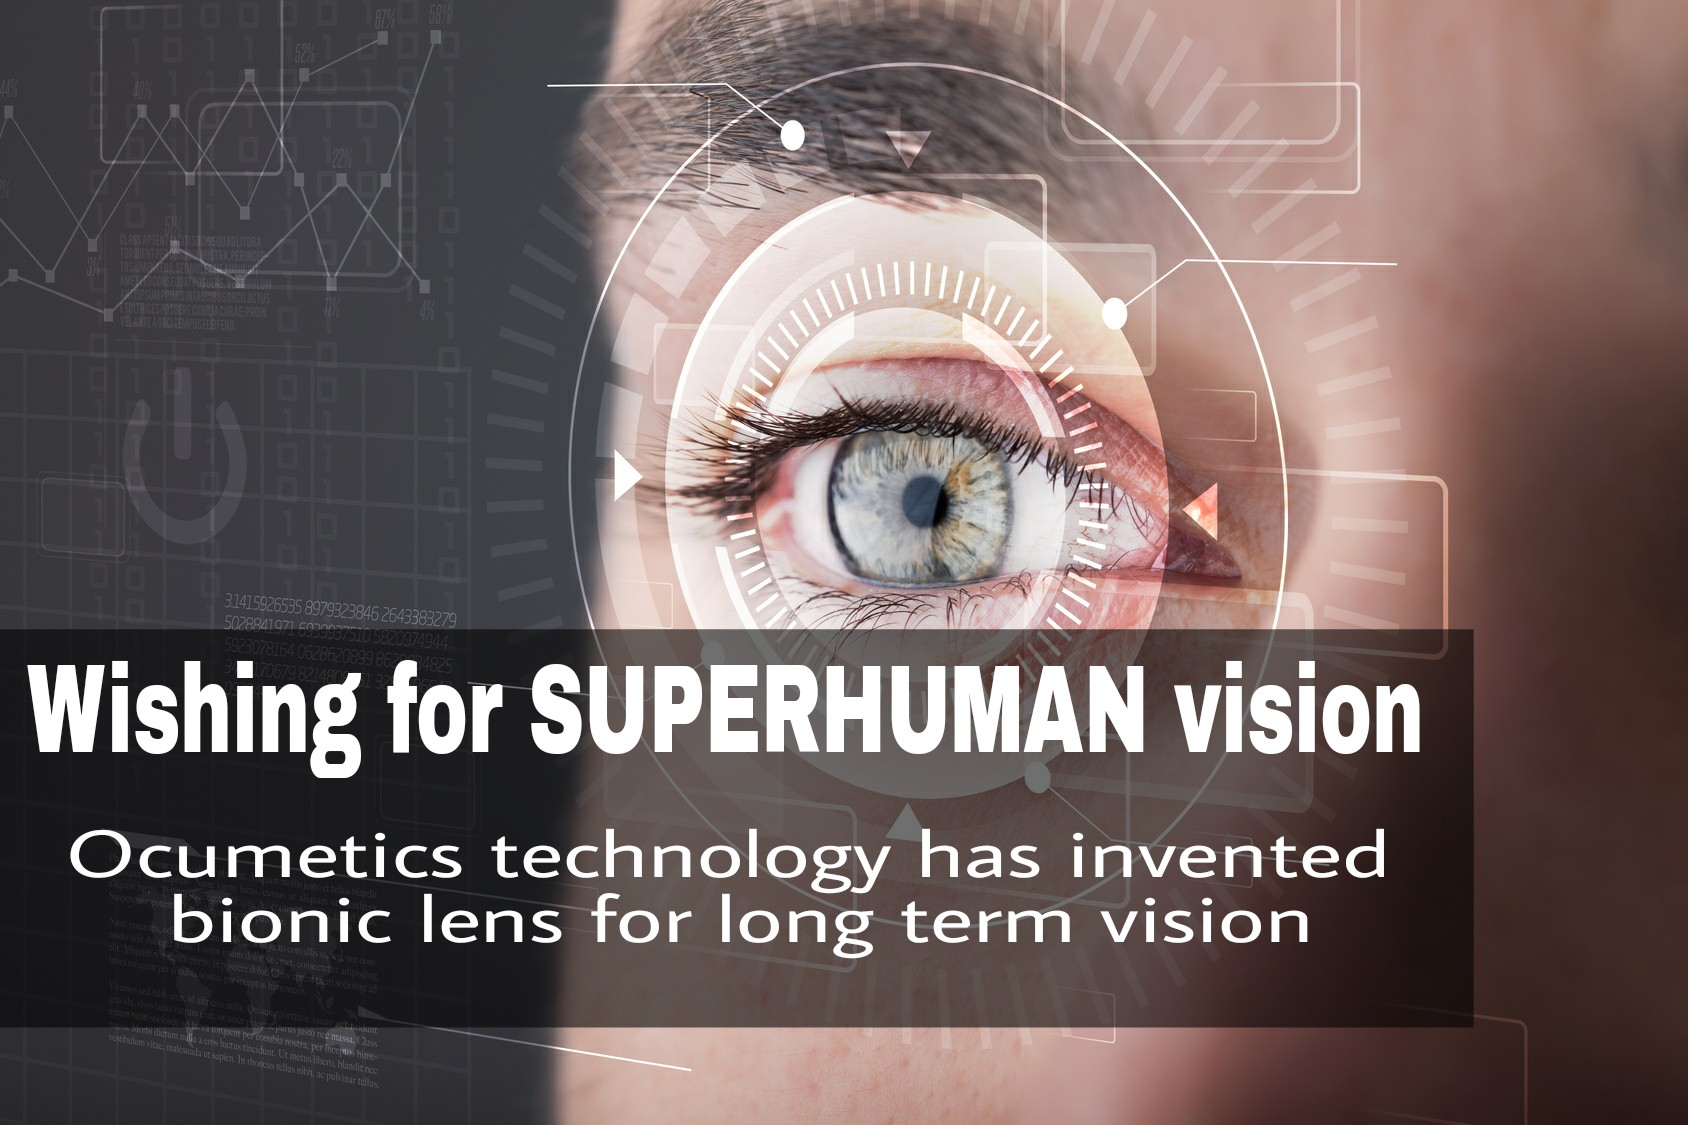 Now you can have SUPERHUMAN vision!!